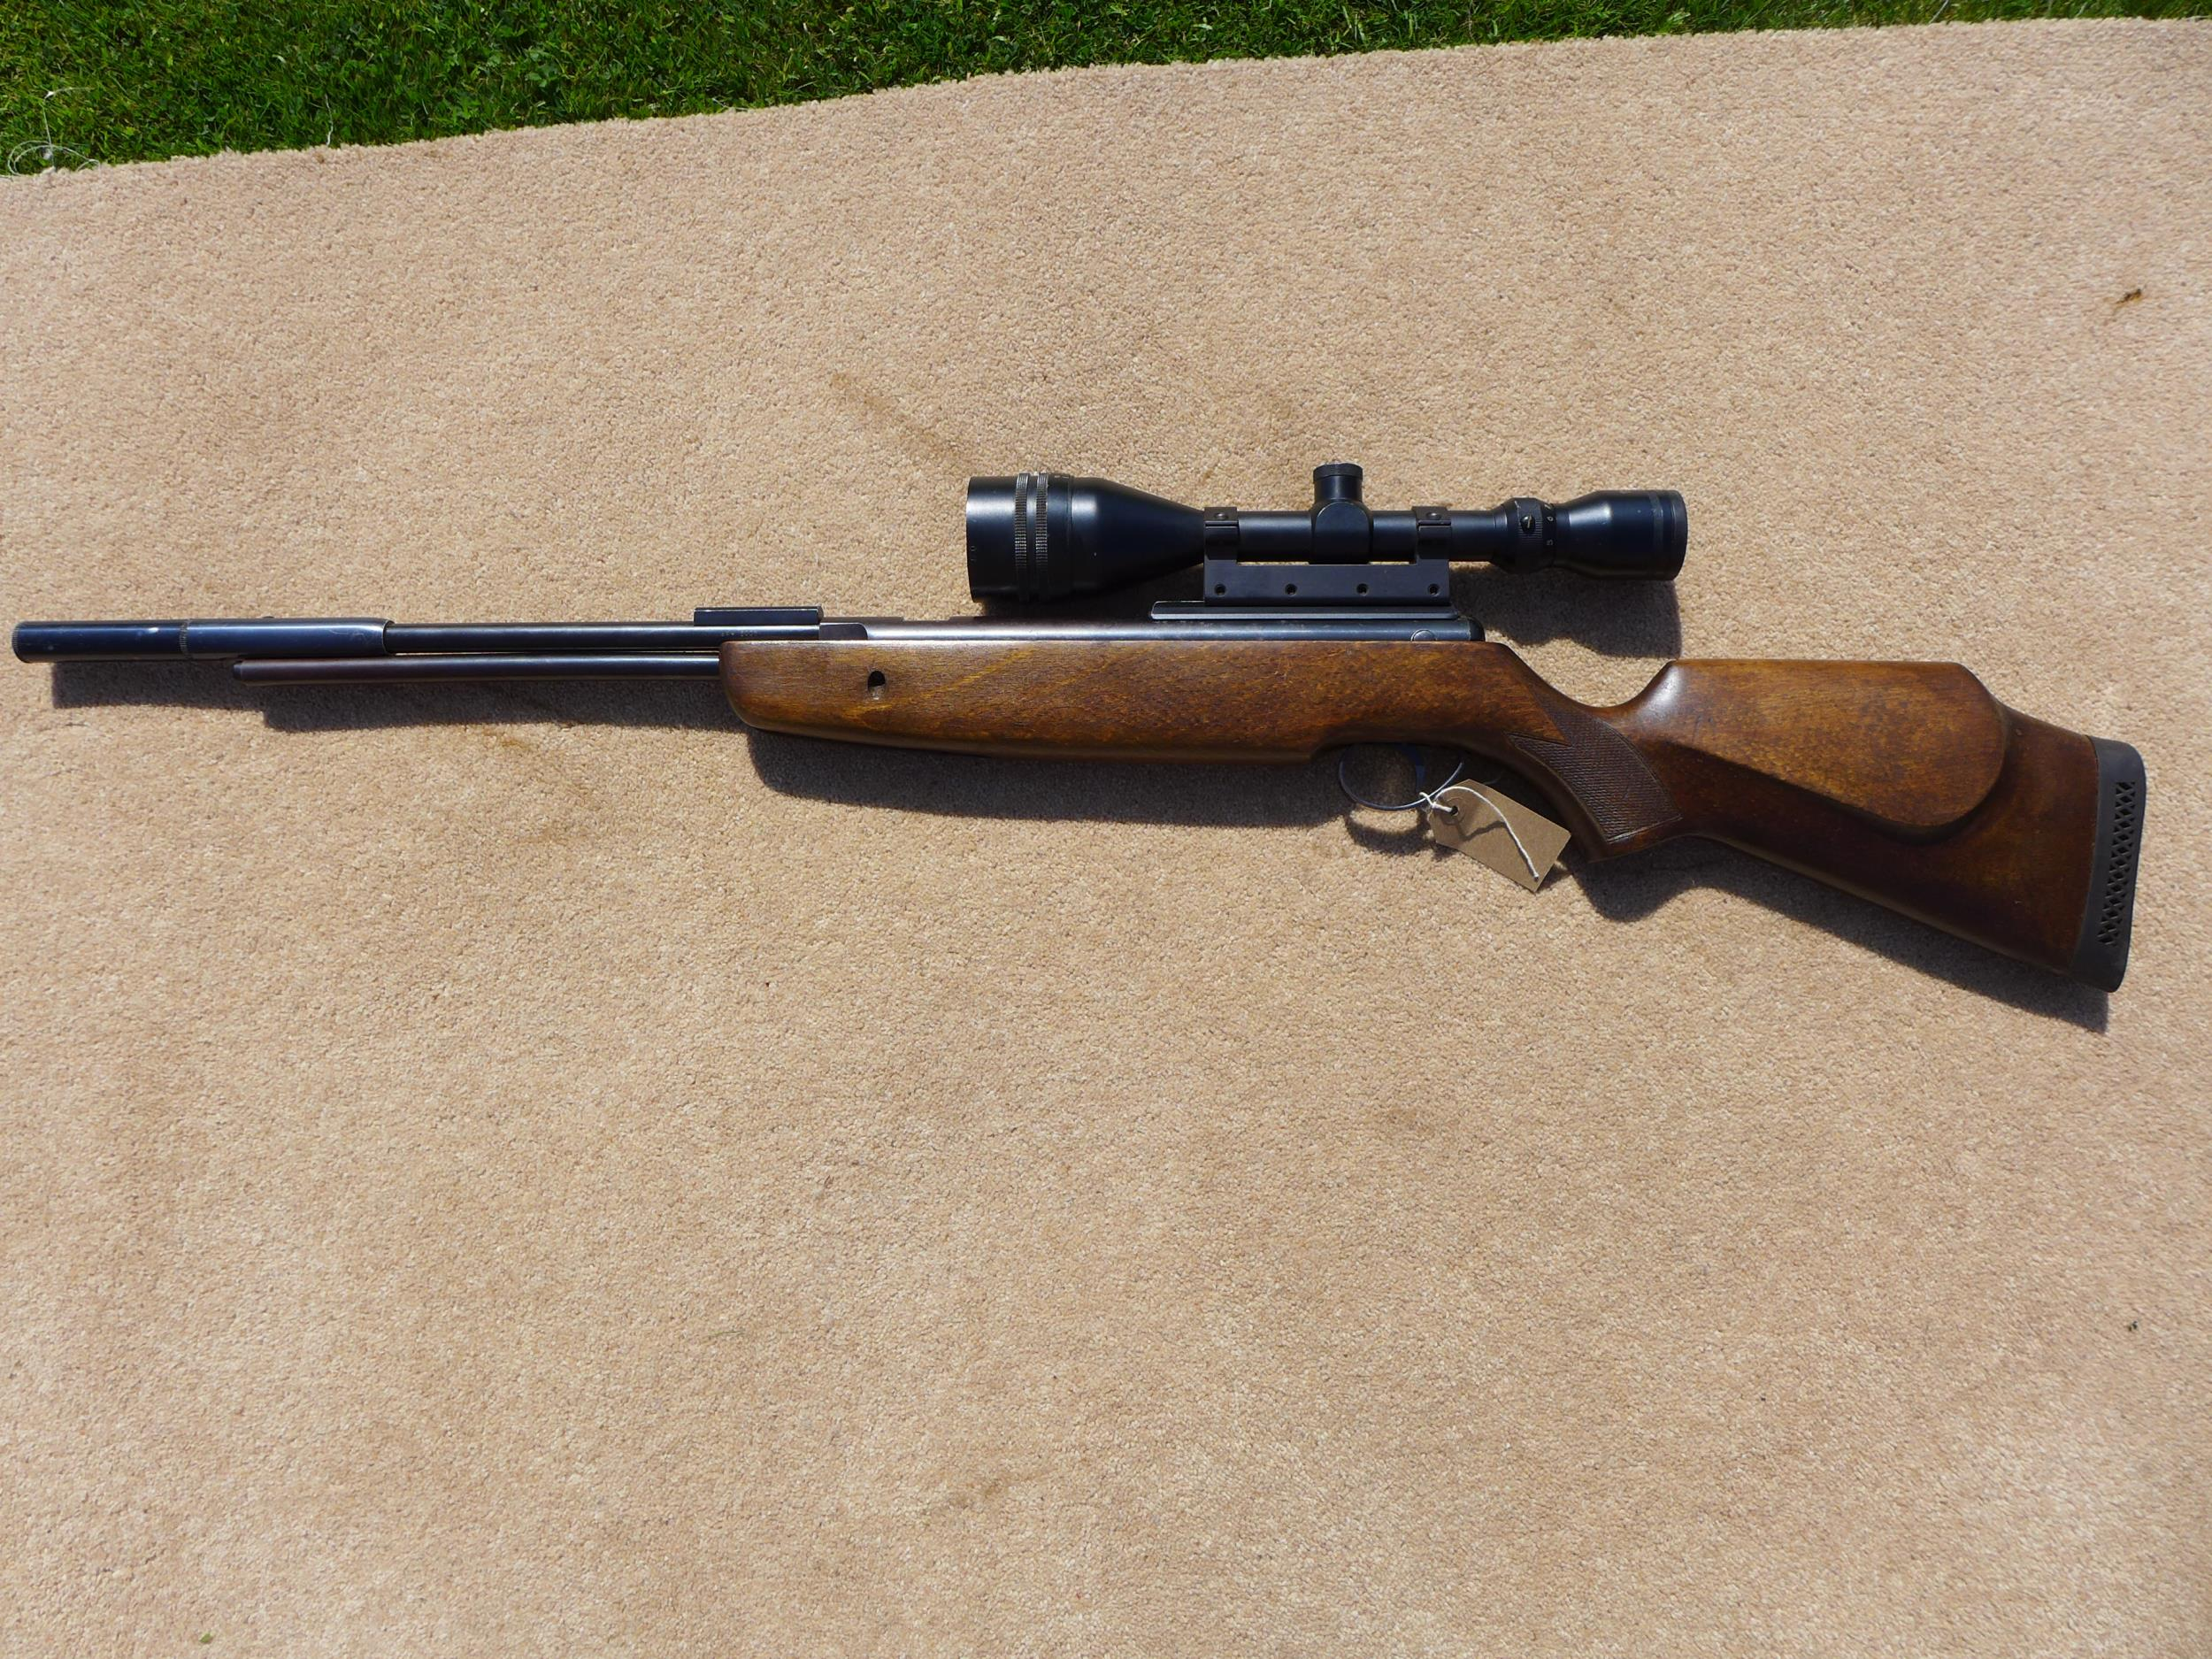 A .22 CALIBRE UNDERLEVER AIR RIFLE WITH SILENCER, LENGTH 47CM, WITH TASCO 9X50 TELESCOPIC SIGHTS - Image 2 of 7